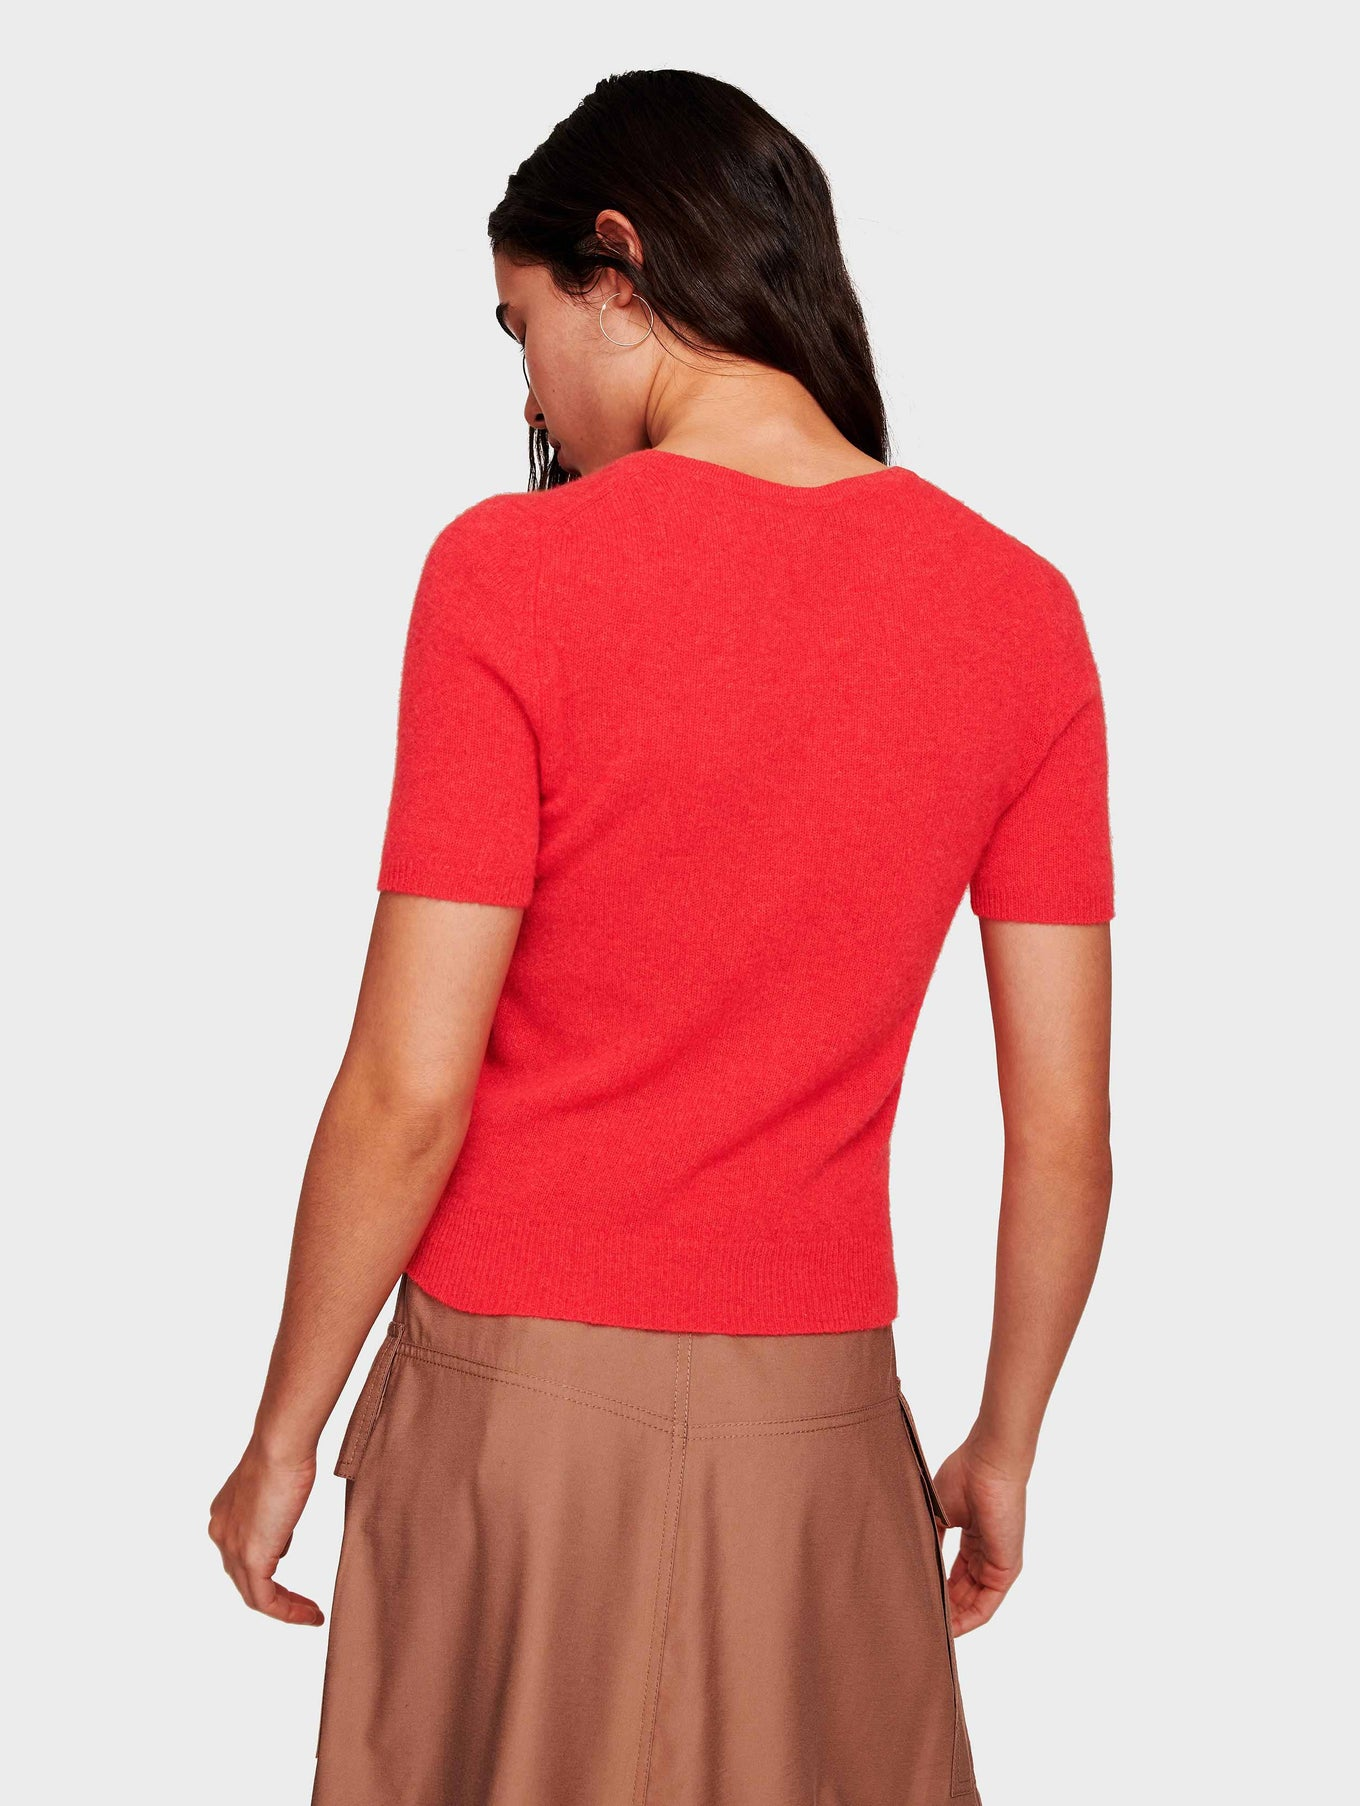 Cashmere Fitted Tee - Bright Poppy Heather - Image 3